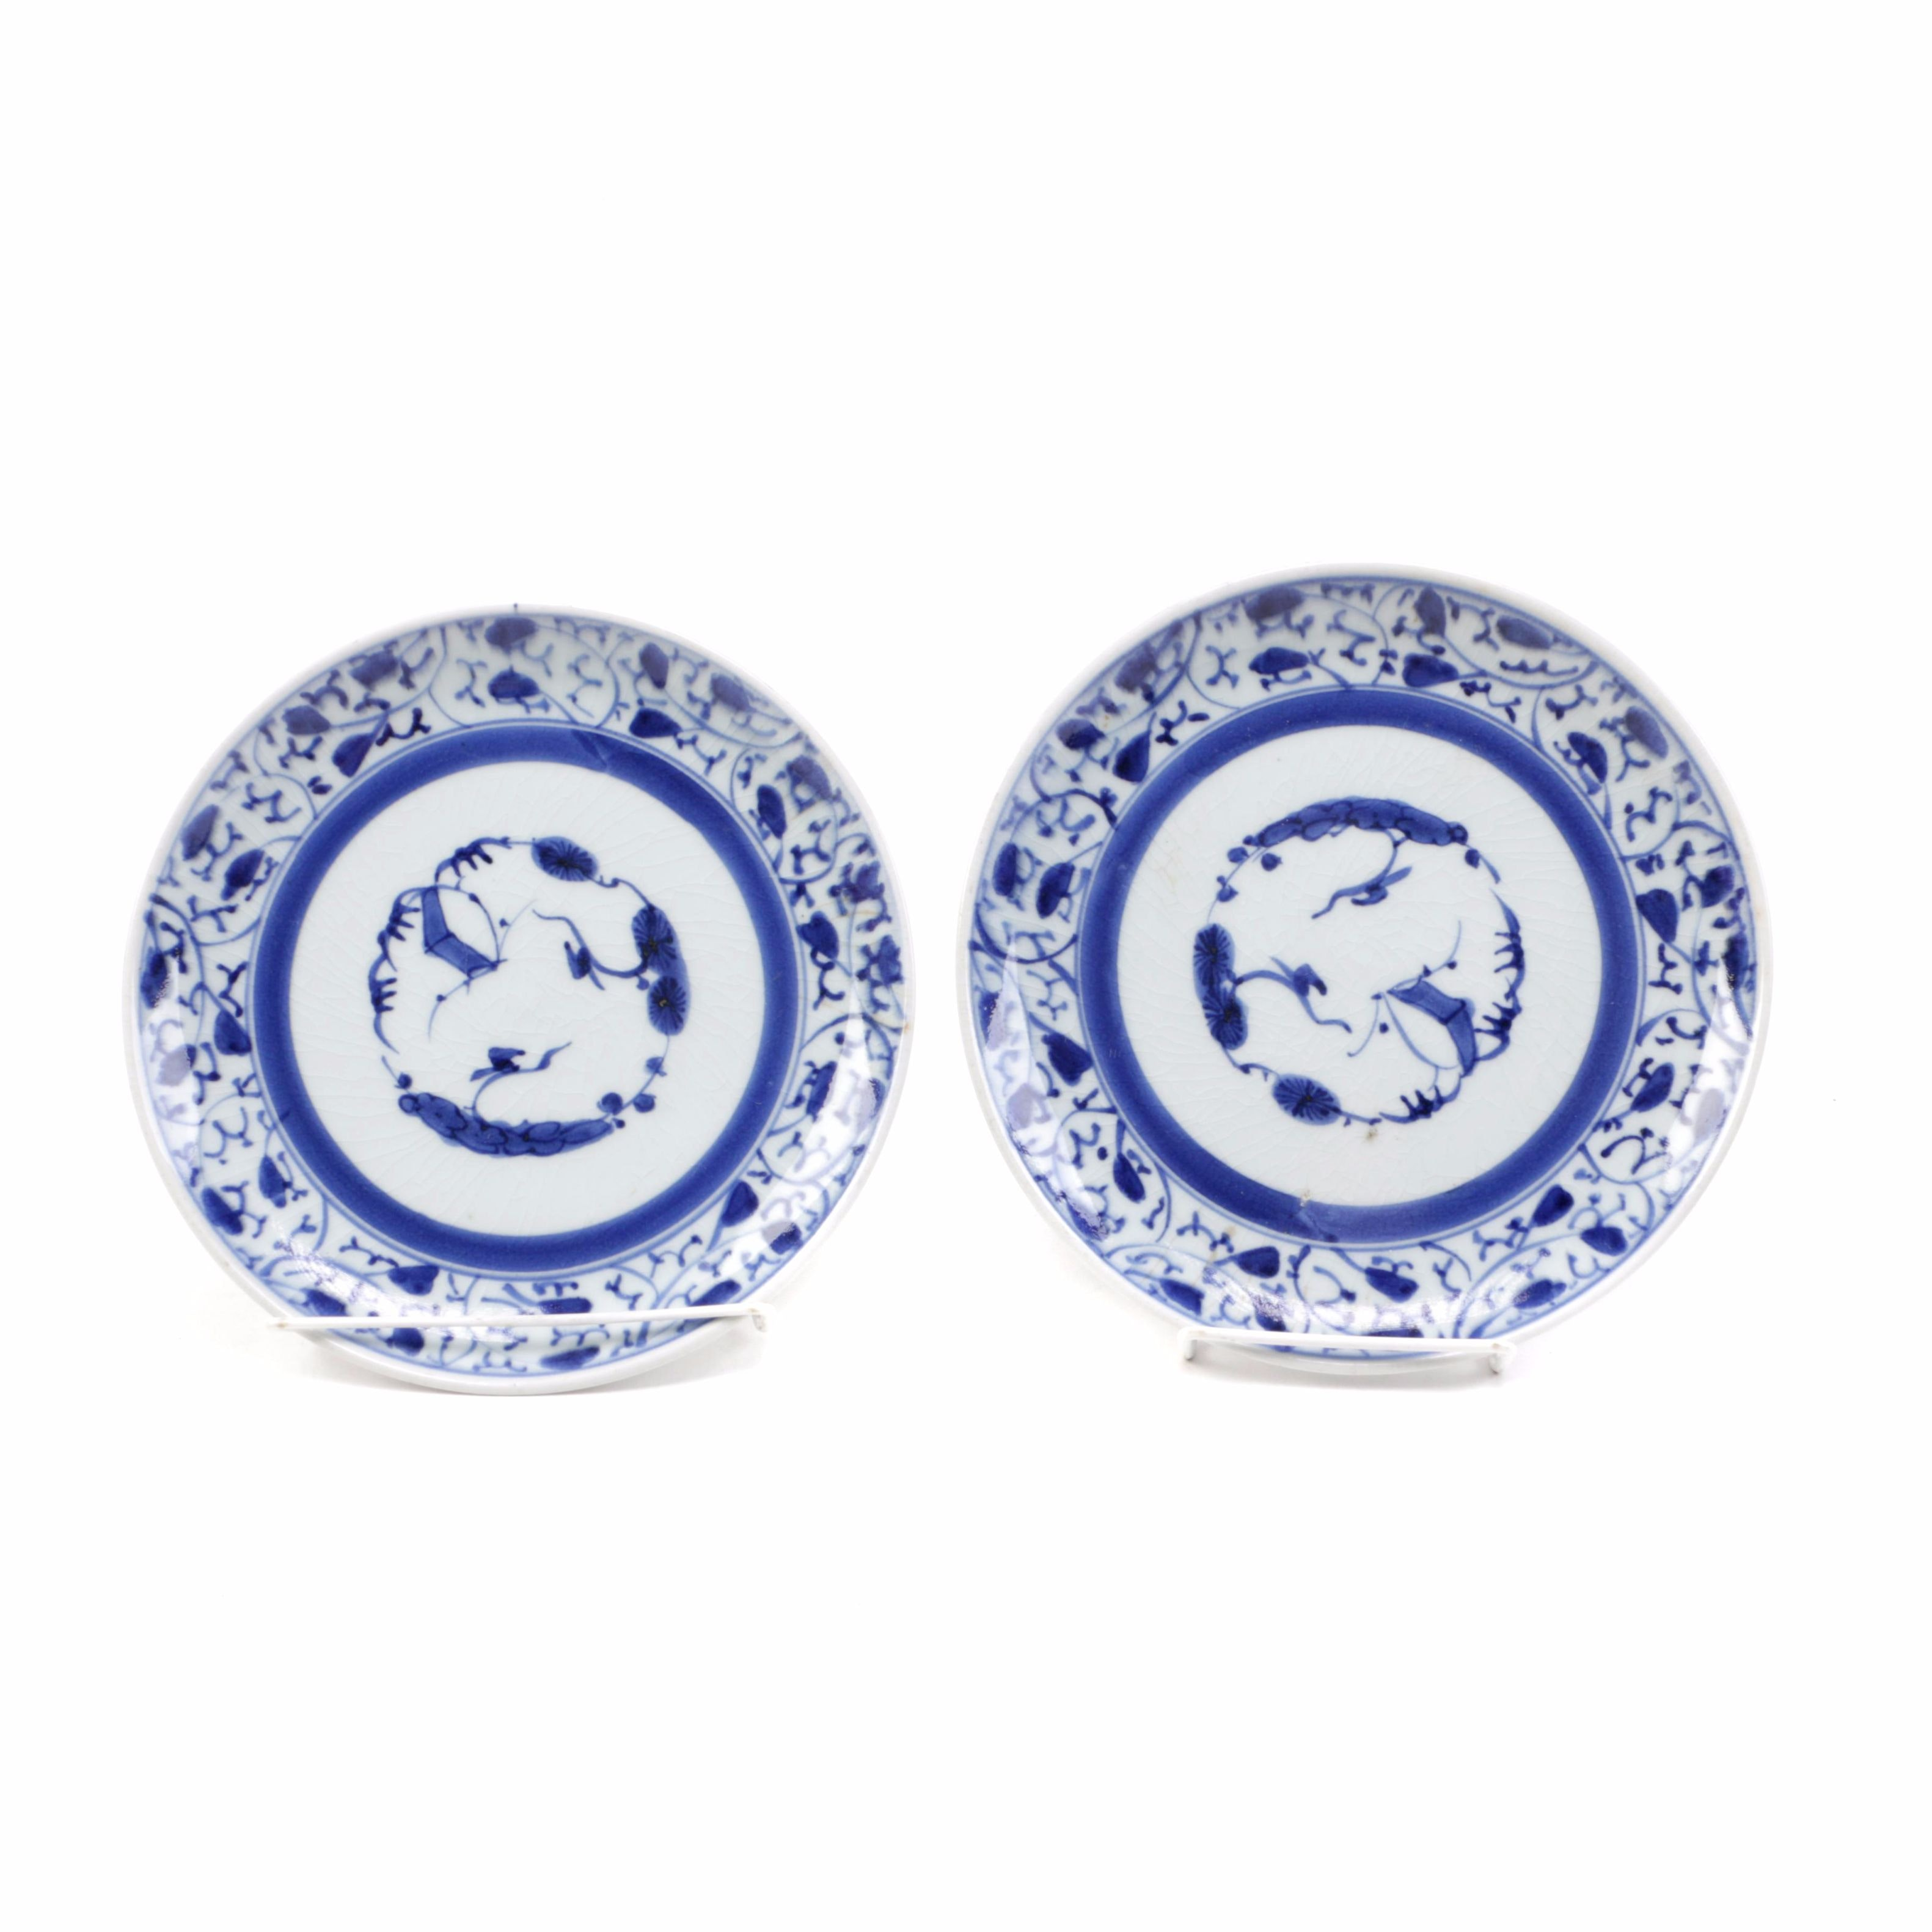 Circa 1750 Japanese Imari Plates in Blue and White